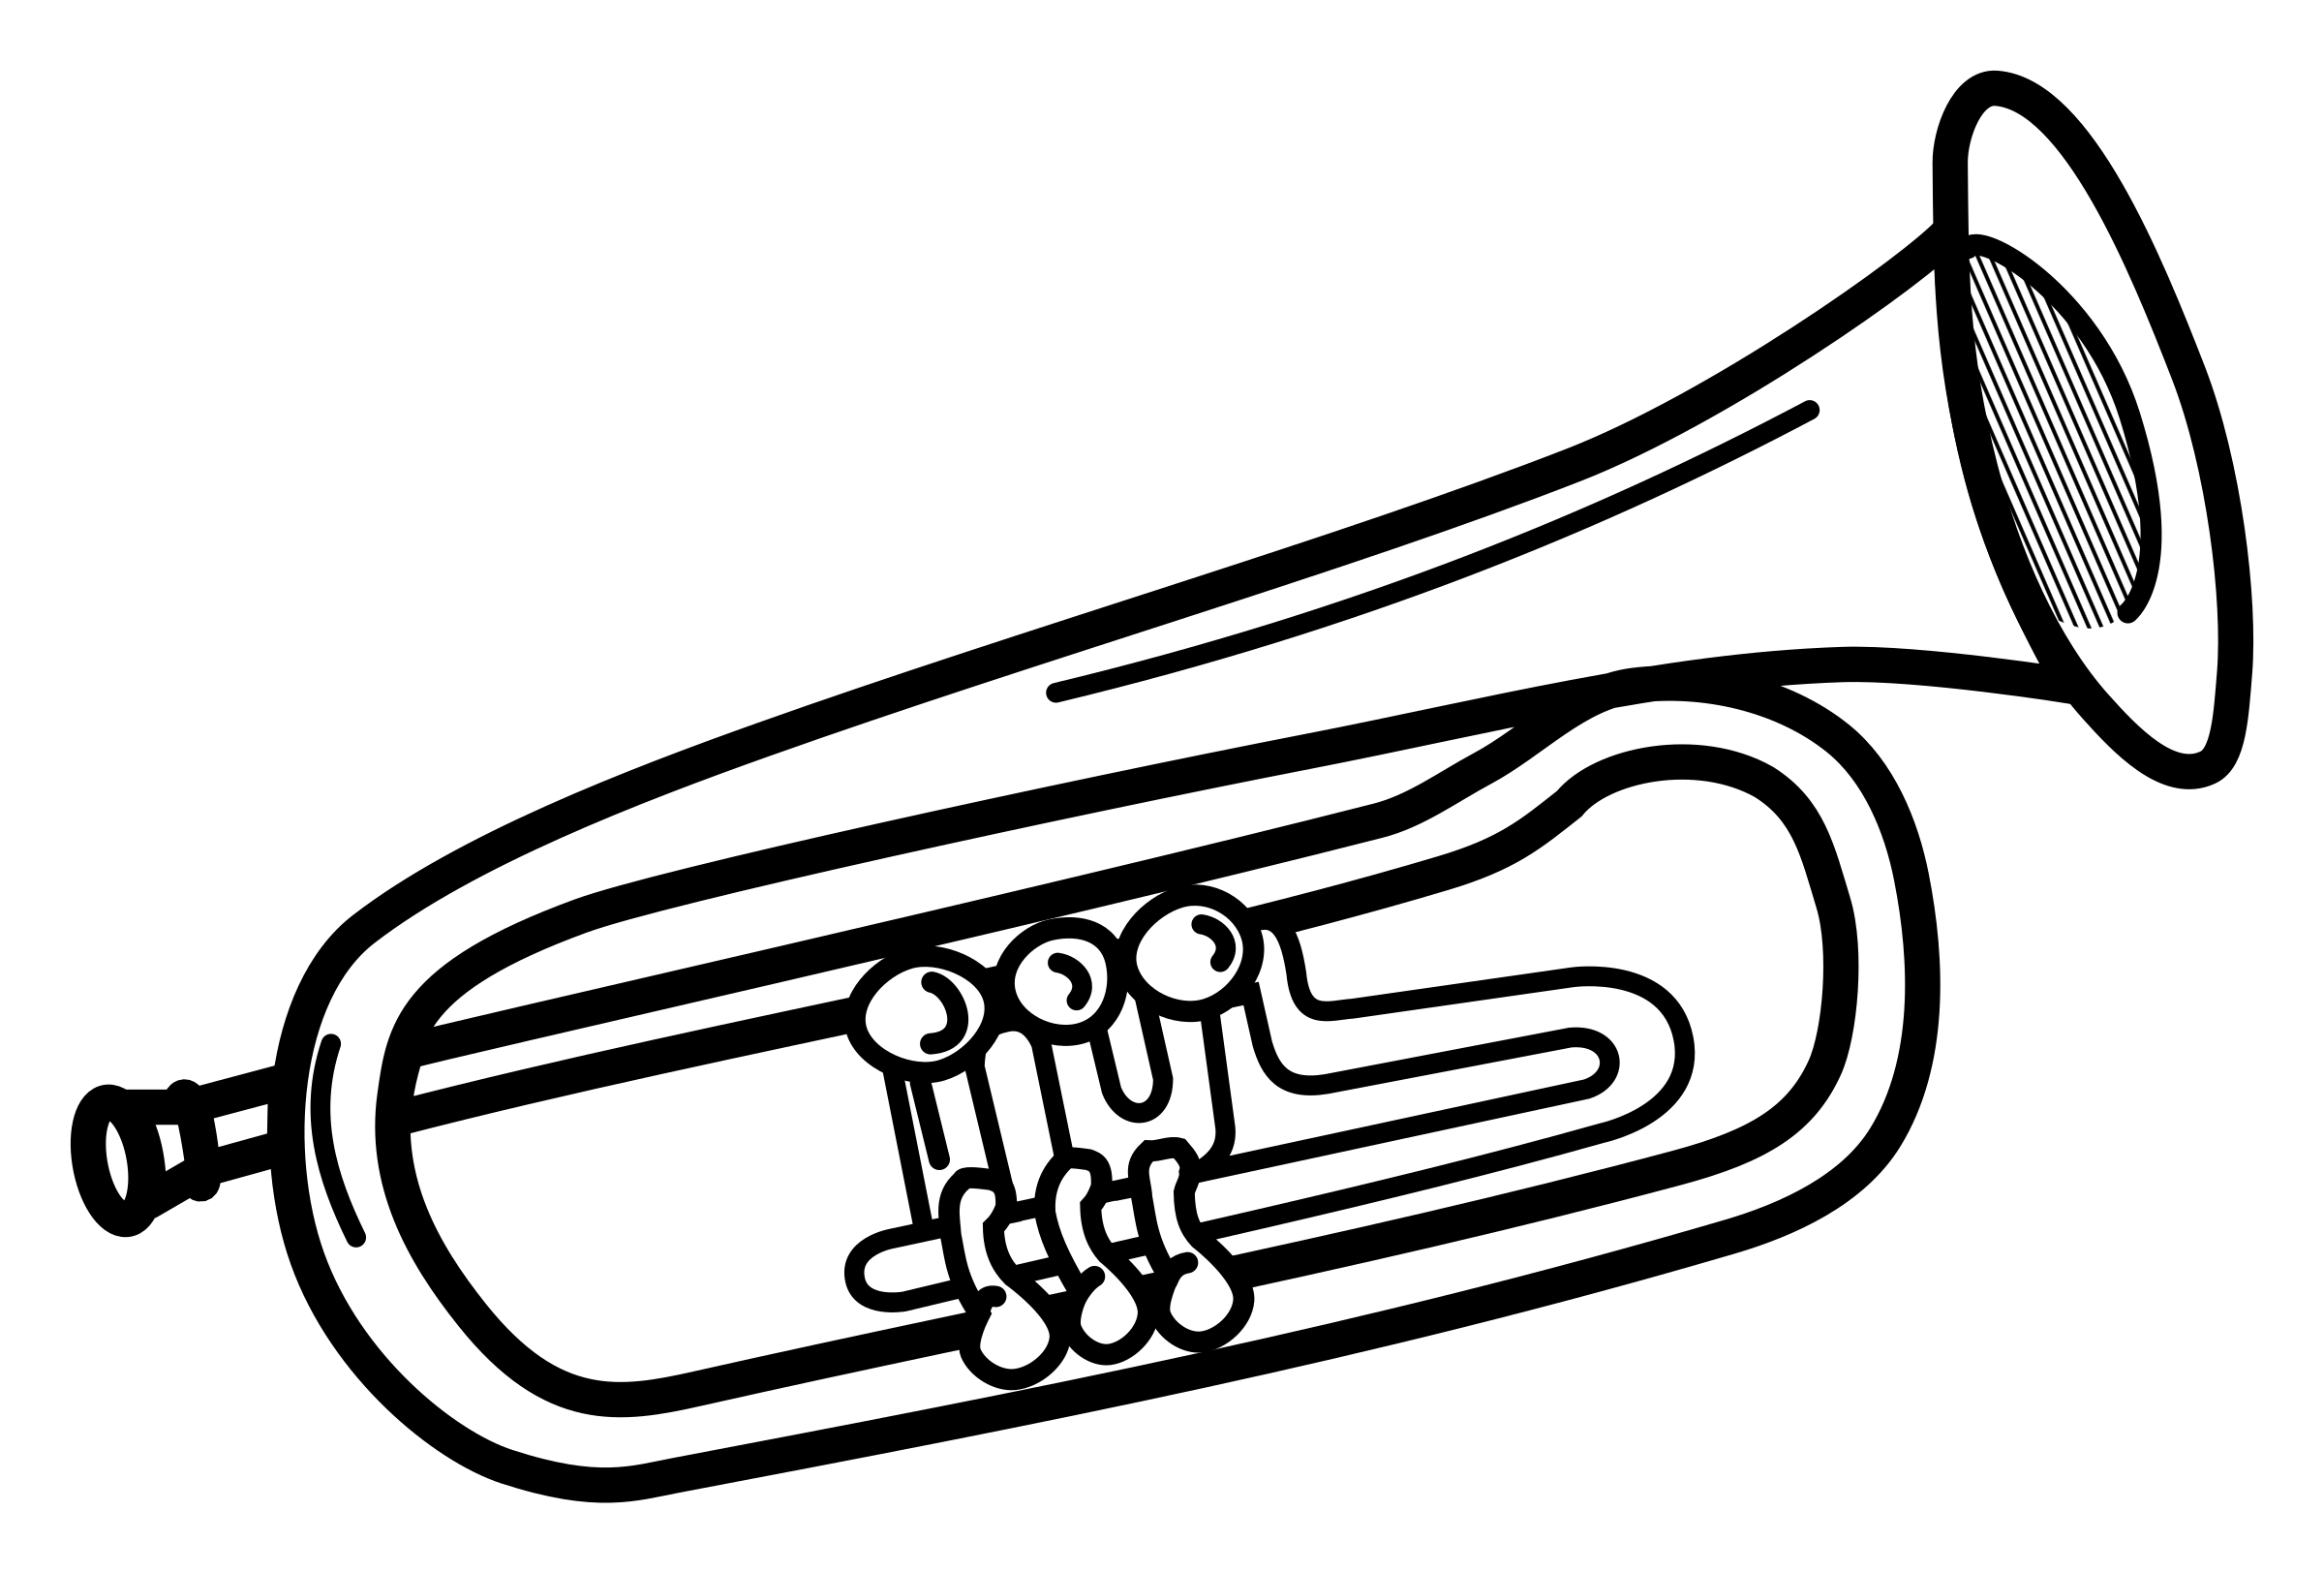 clipart black and white download Trumpet lineart big image. Musical instruments clipart black and white